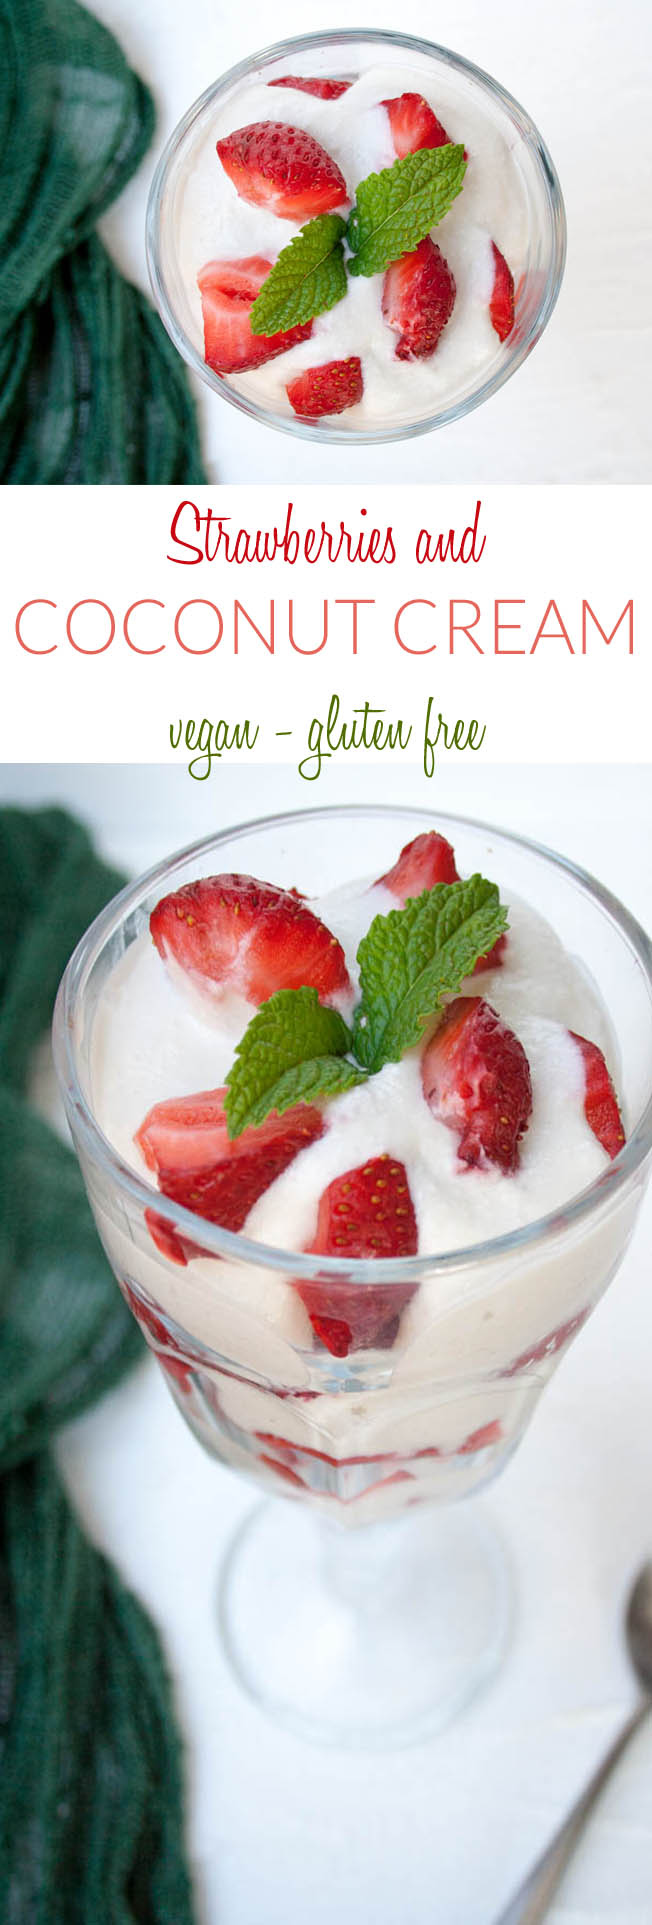 Strawberries and Coconut Cream collage photo with text